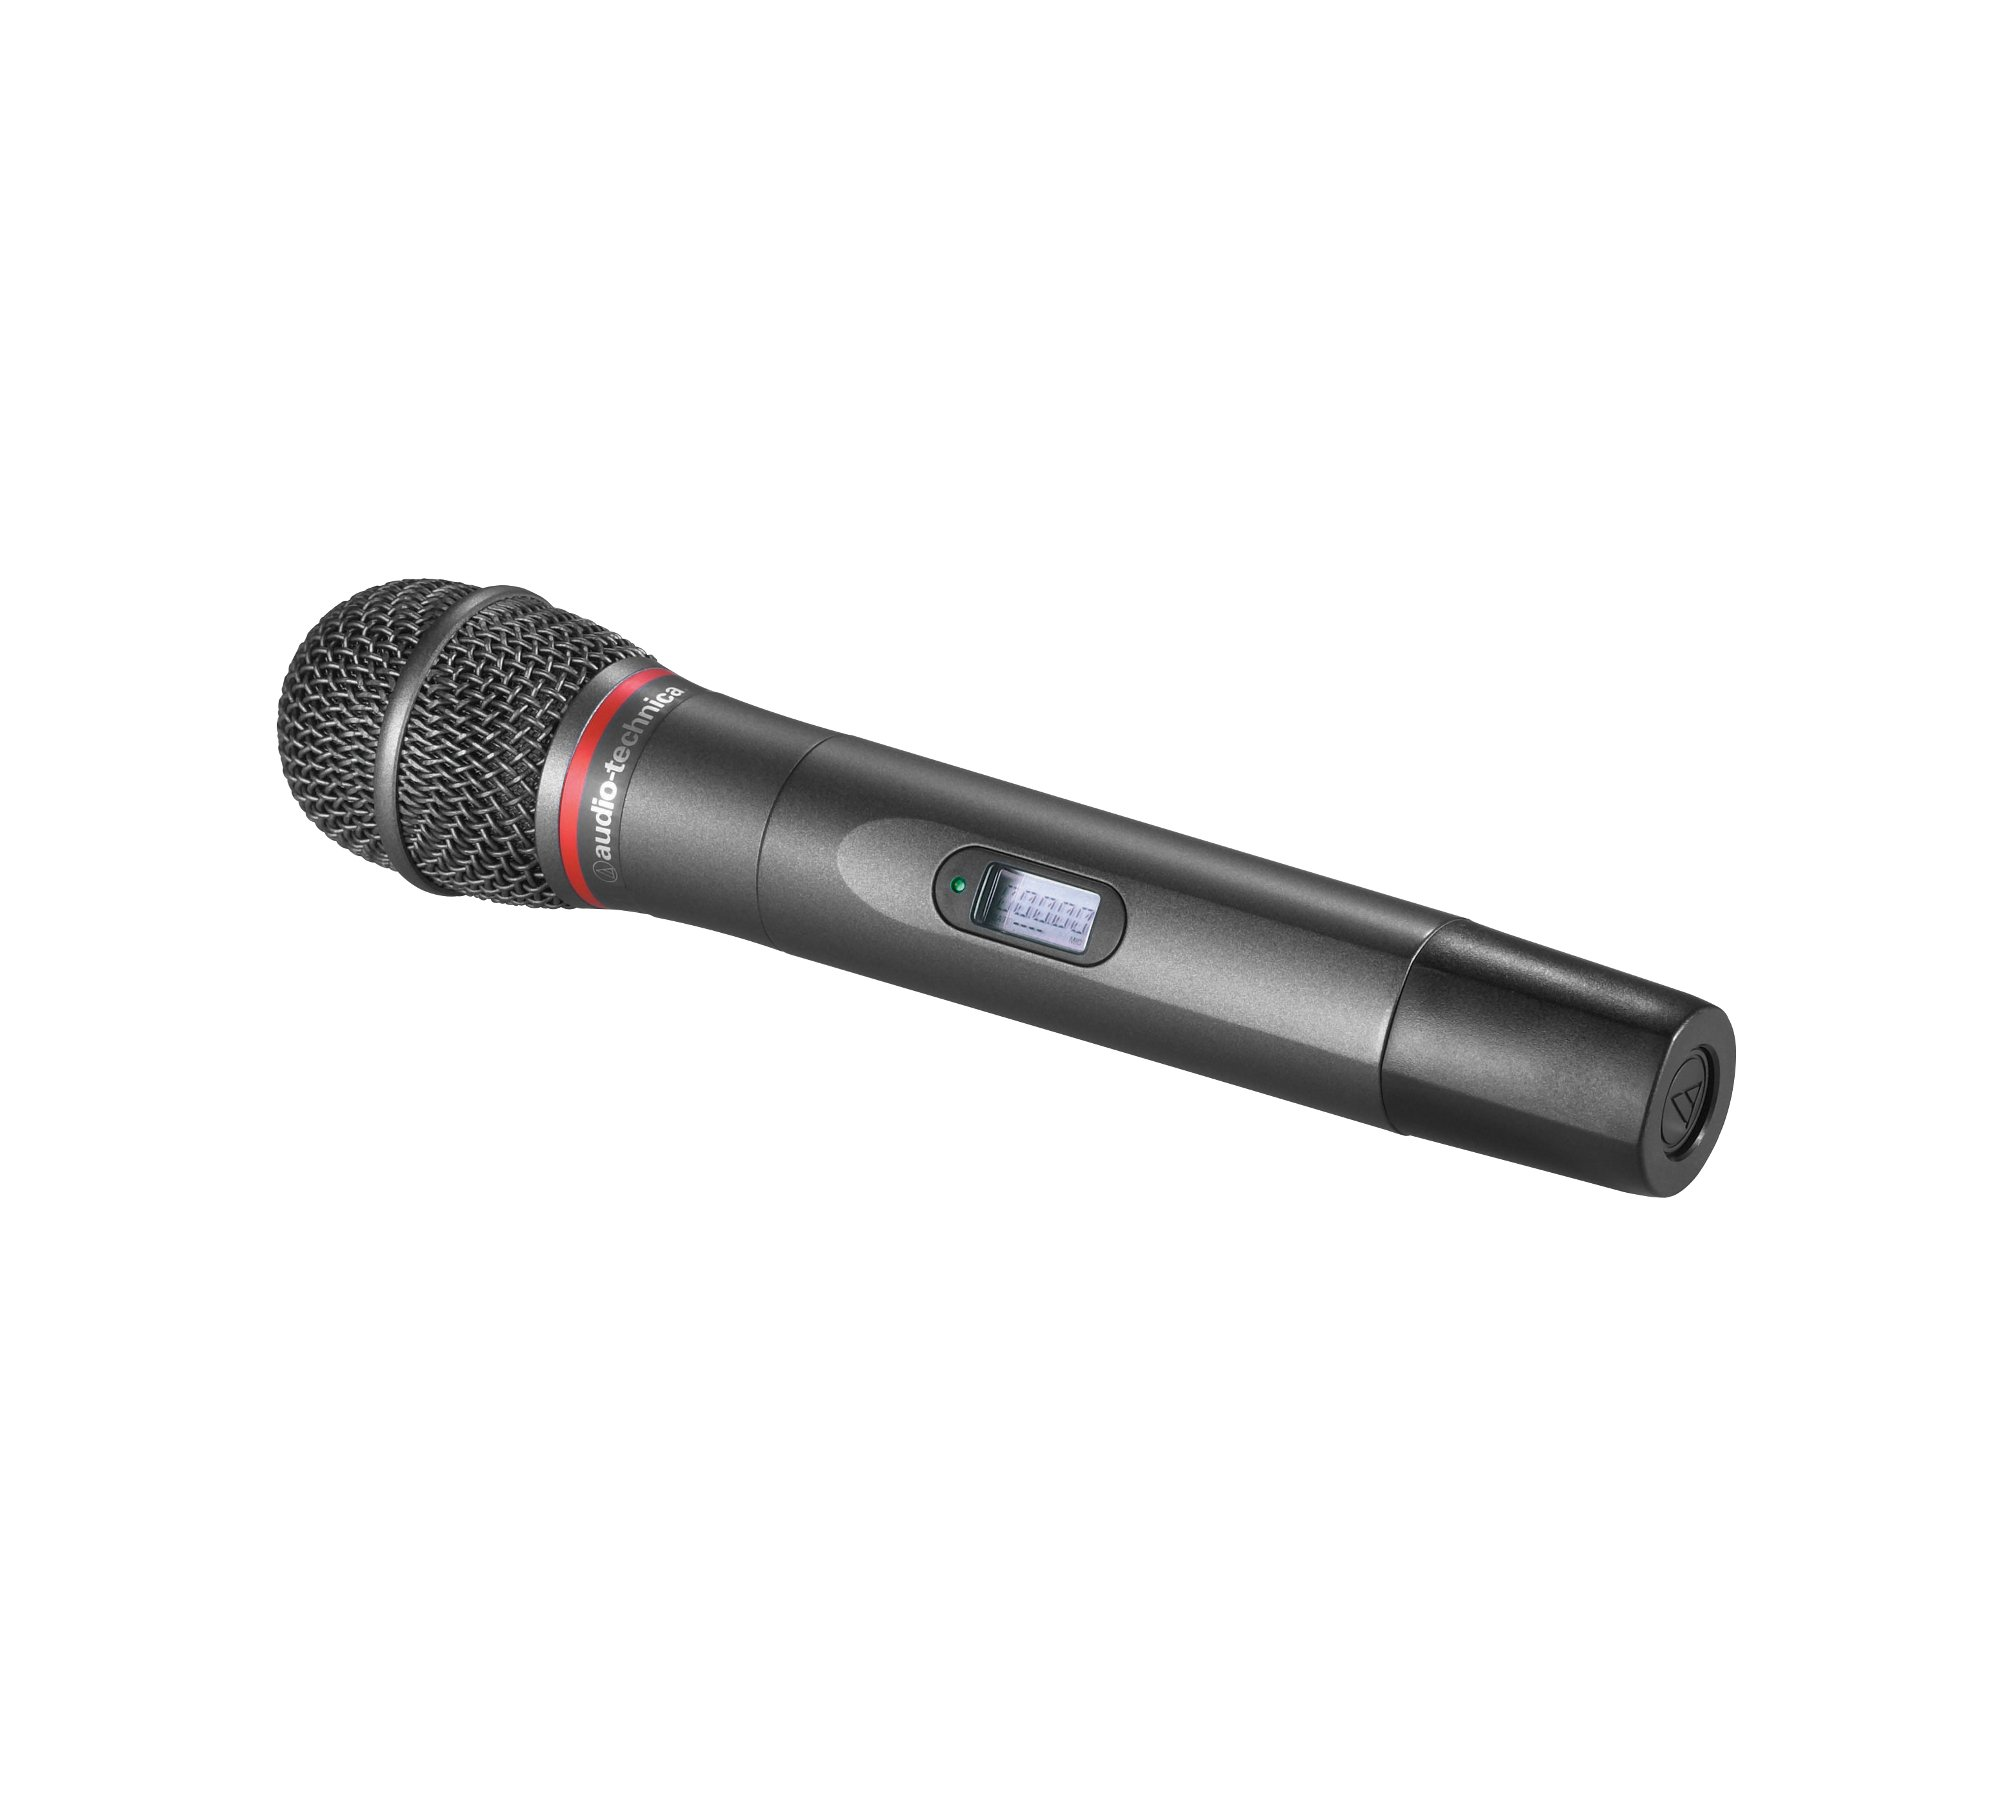 Handheld Transmitter, Cardioid Dynamic, AT 3000 Series, TV16-20